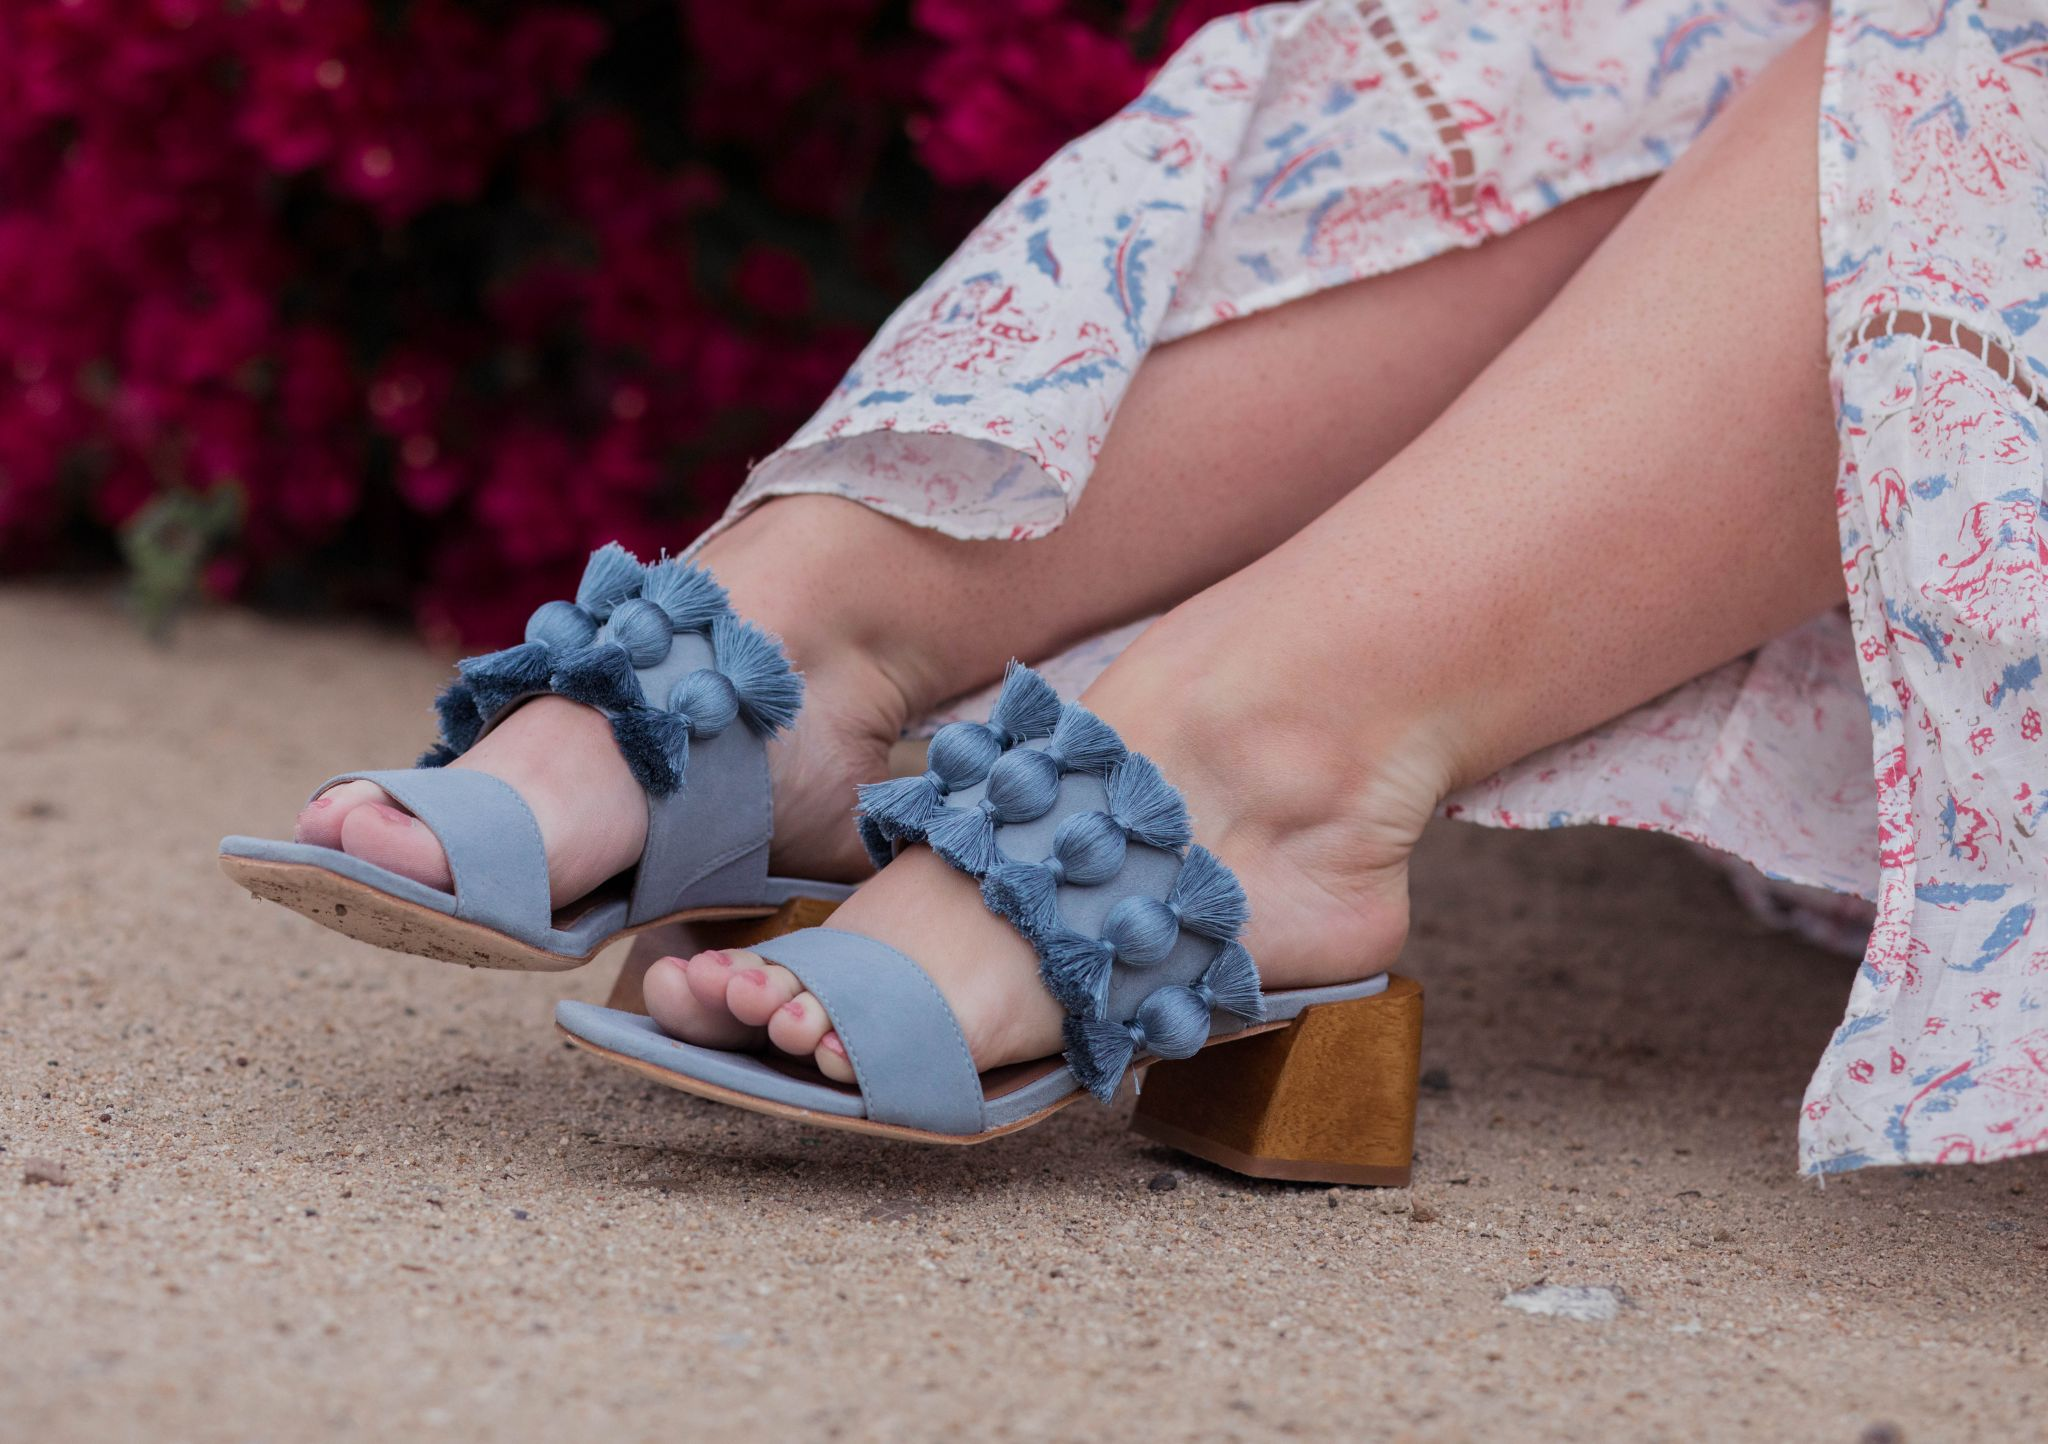 Elizabeth Hugen of Lizzie in Lace shares her girly shoe collection including these bernardo heels